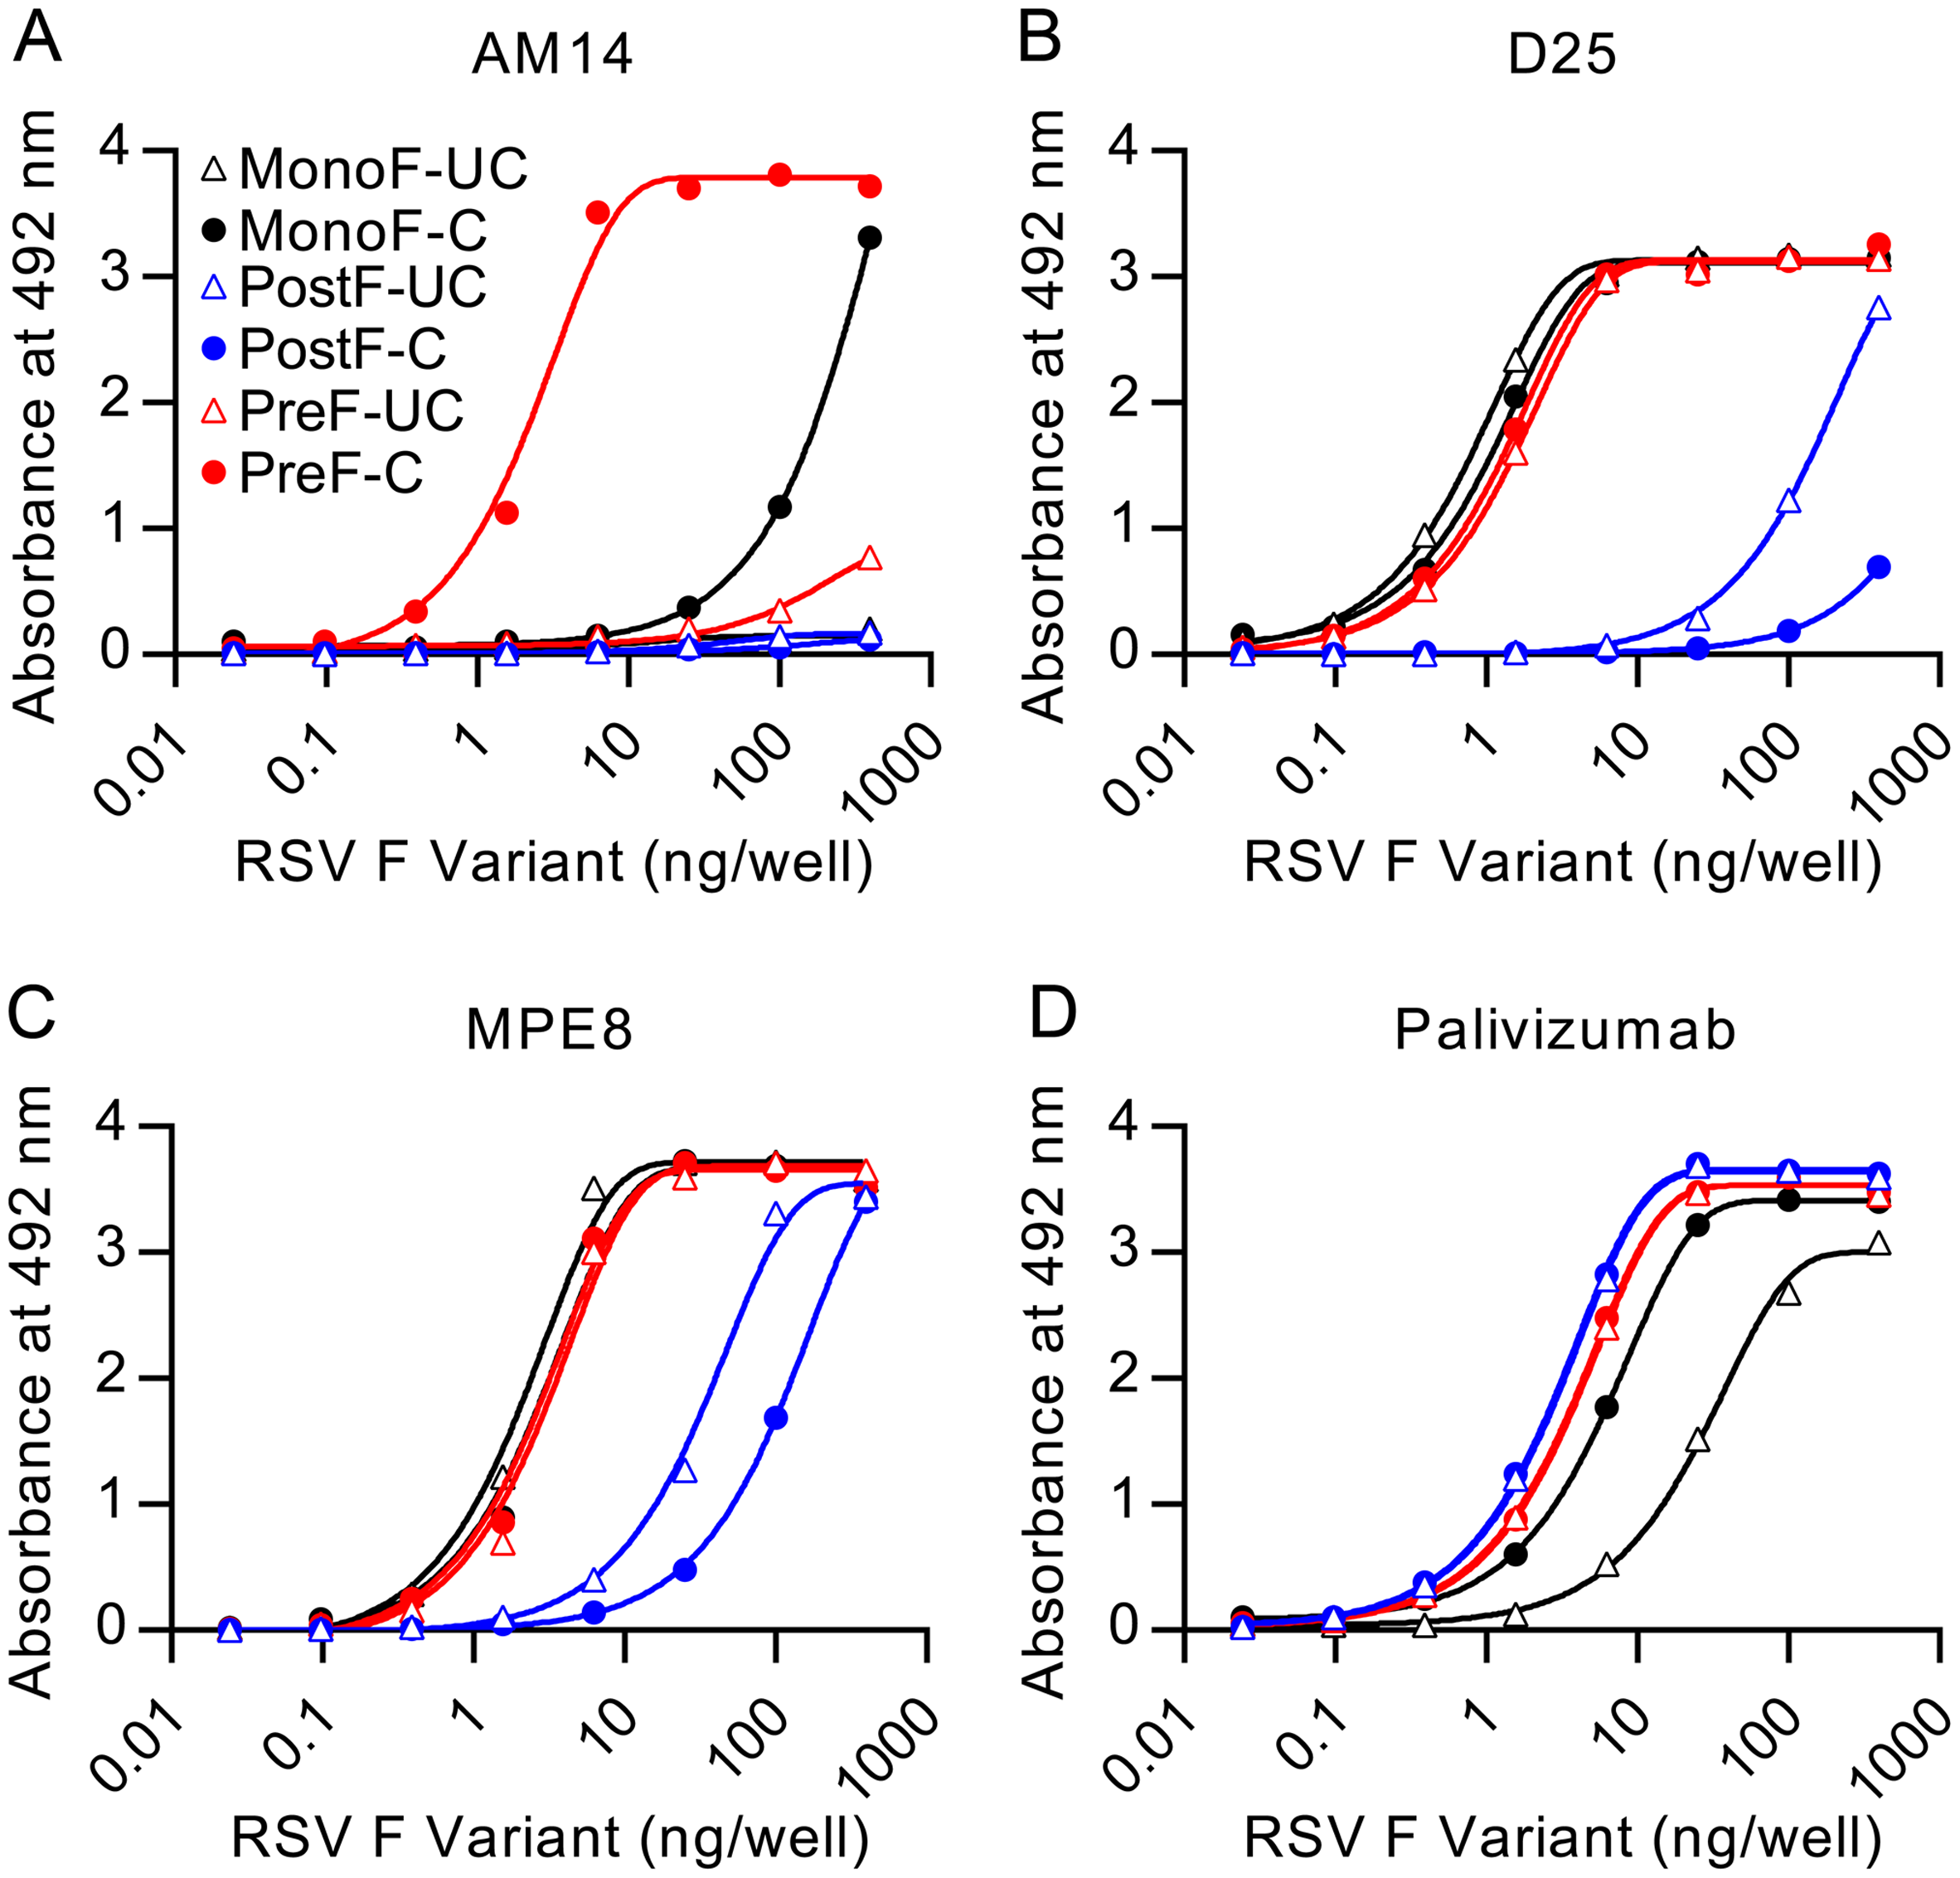 AM14 is specific for cleaved, trimeric RSV F.